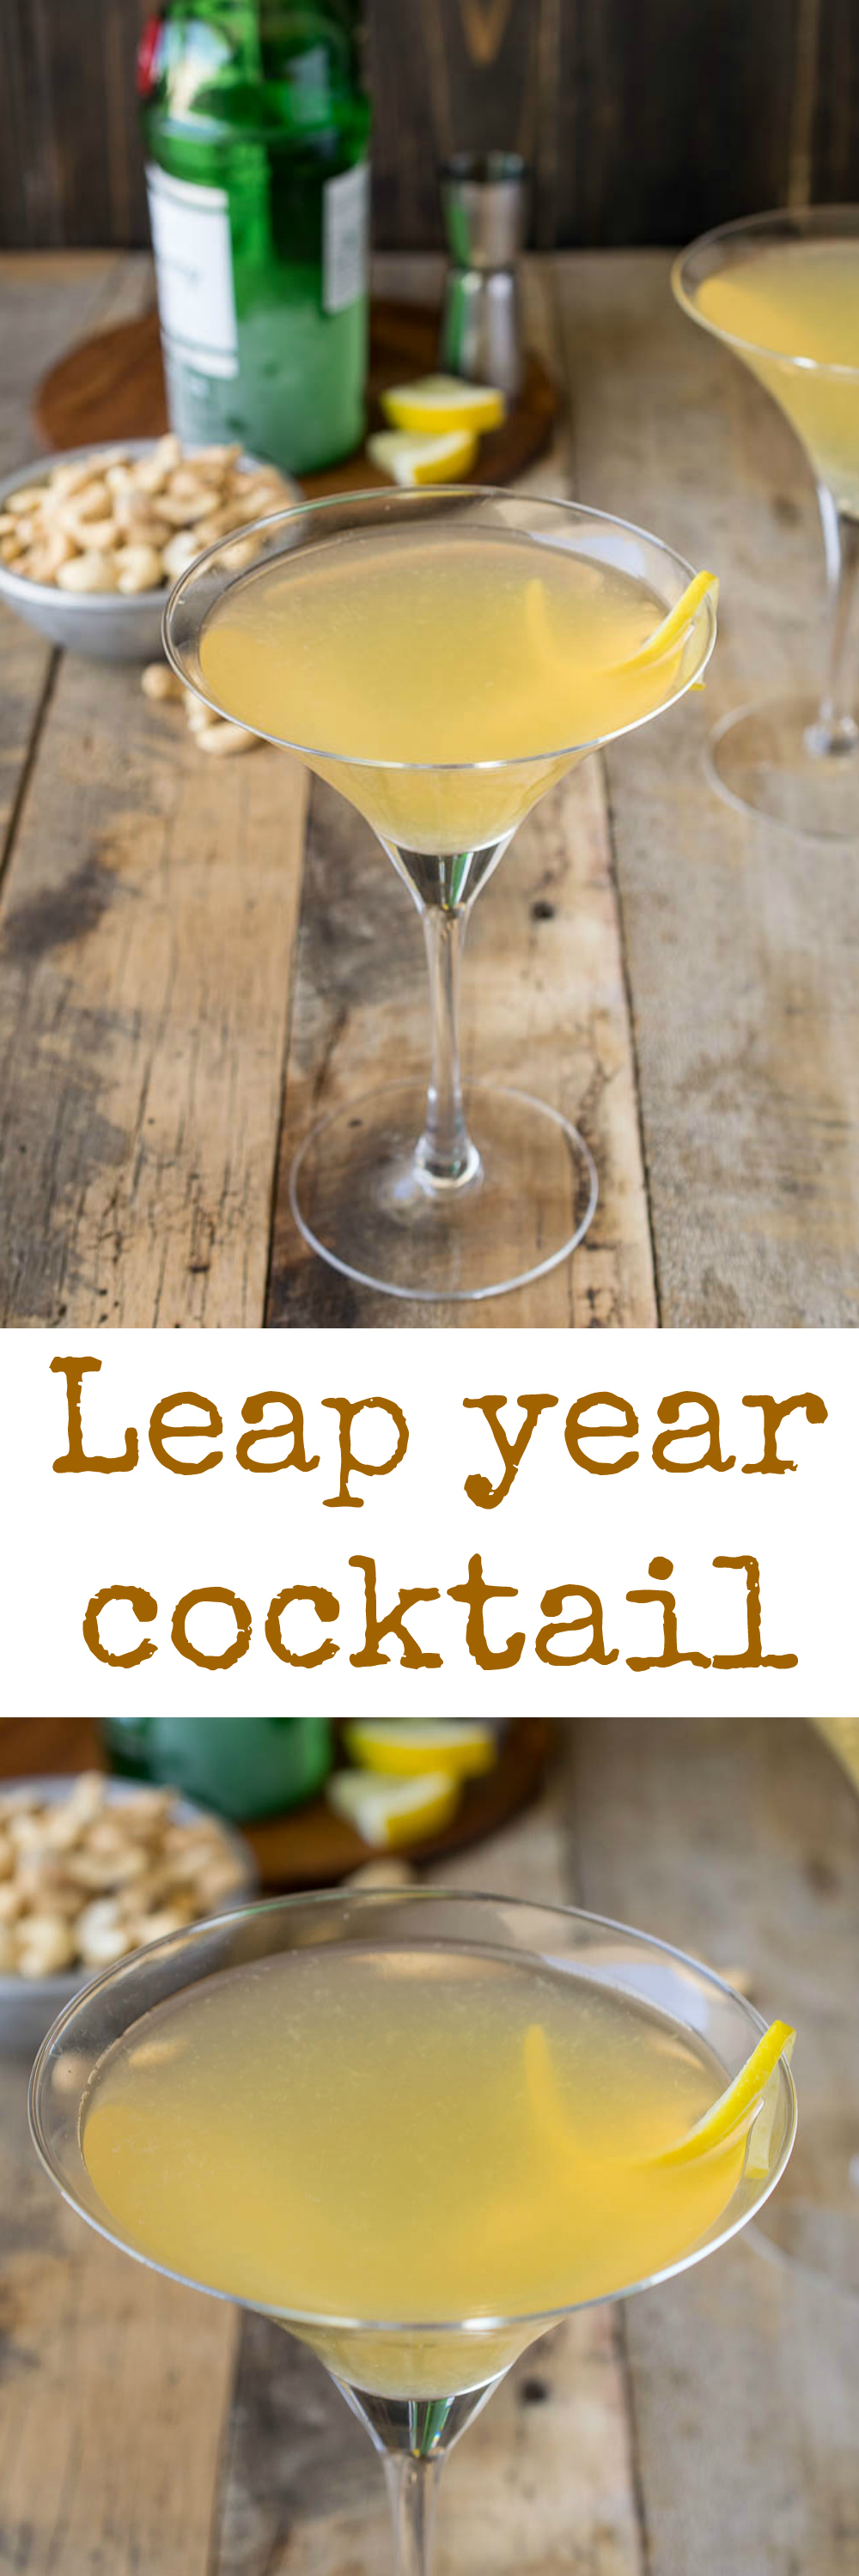 Leap year cocktail. Gin, Grand Marnier, sweet vermouth and fresh lemon juice. Invented in London in the leap year of 1928.